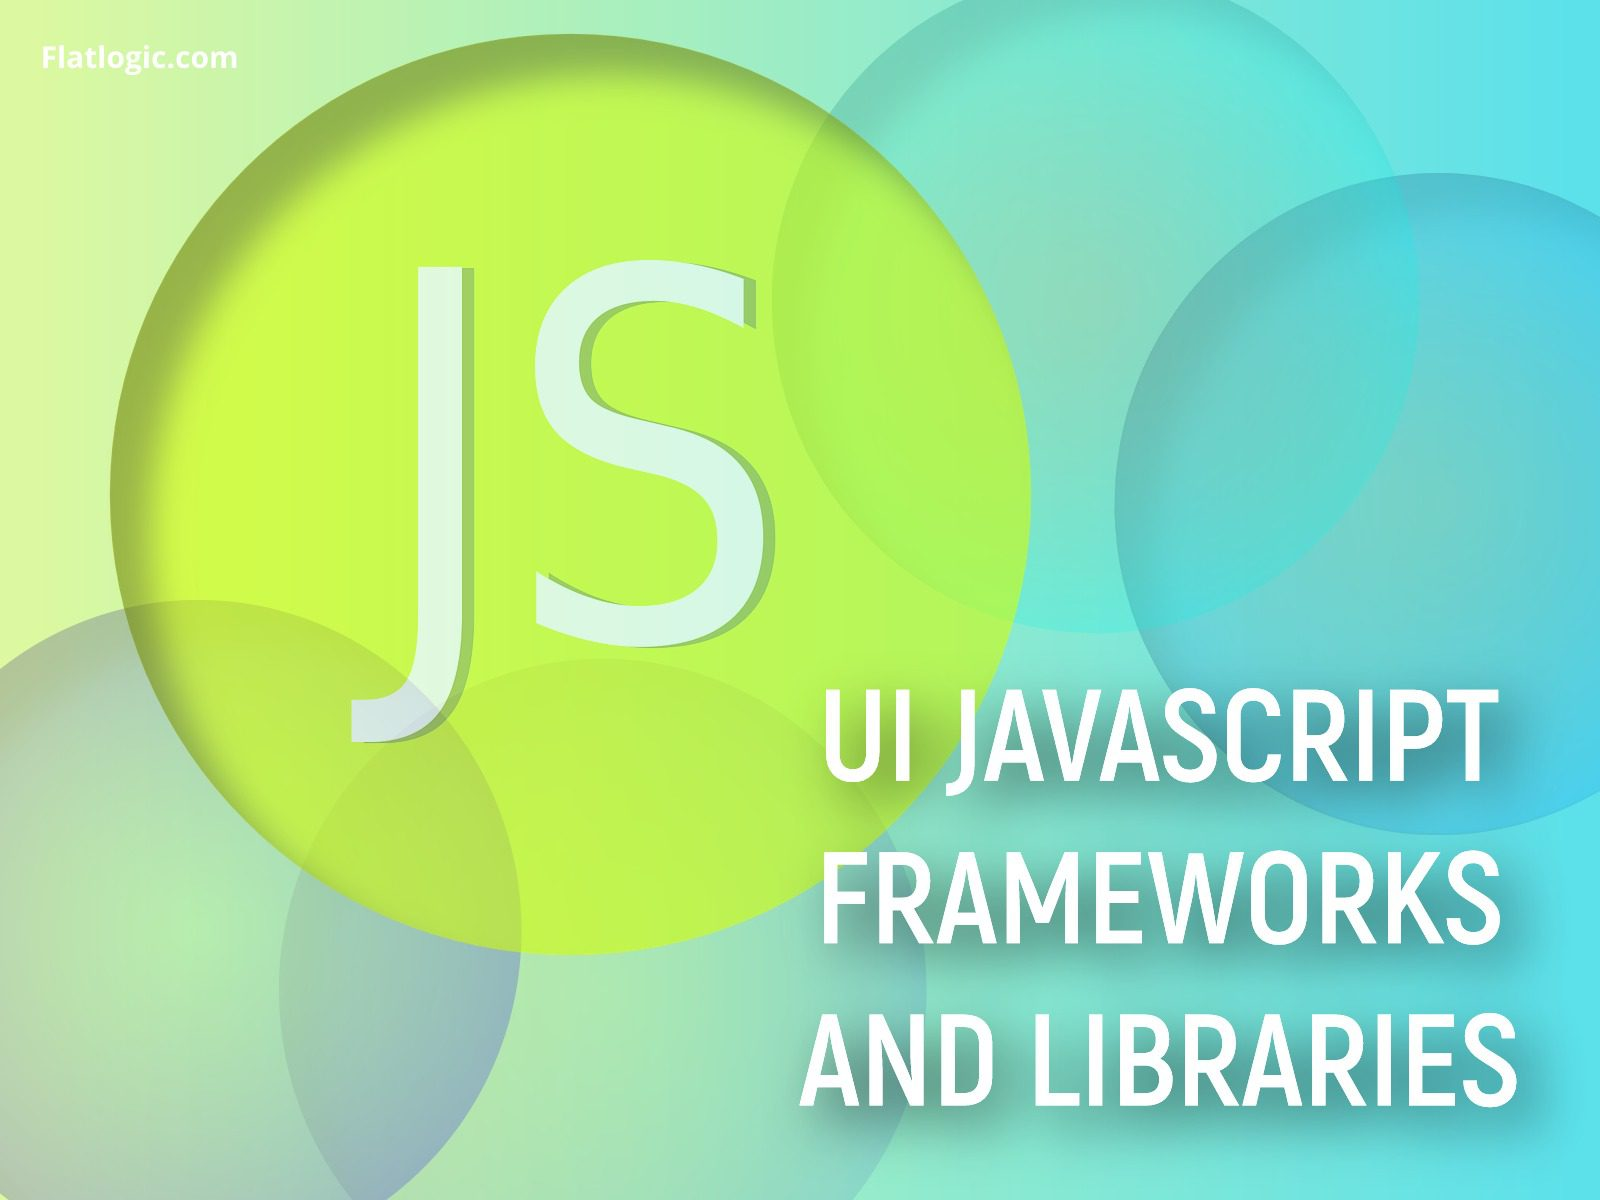 UI JavaScript Frameworks and Libraries for Web Development